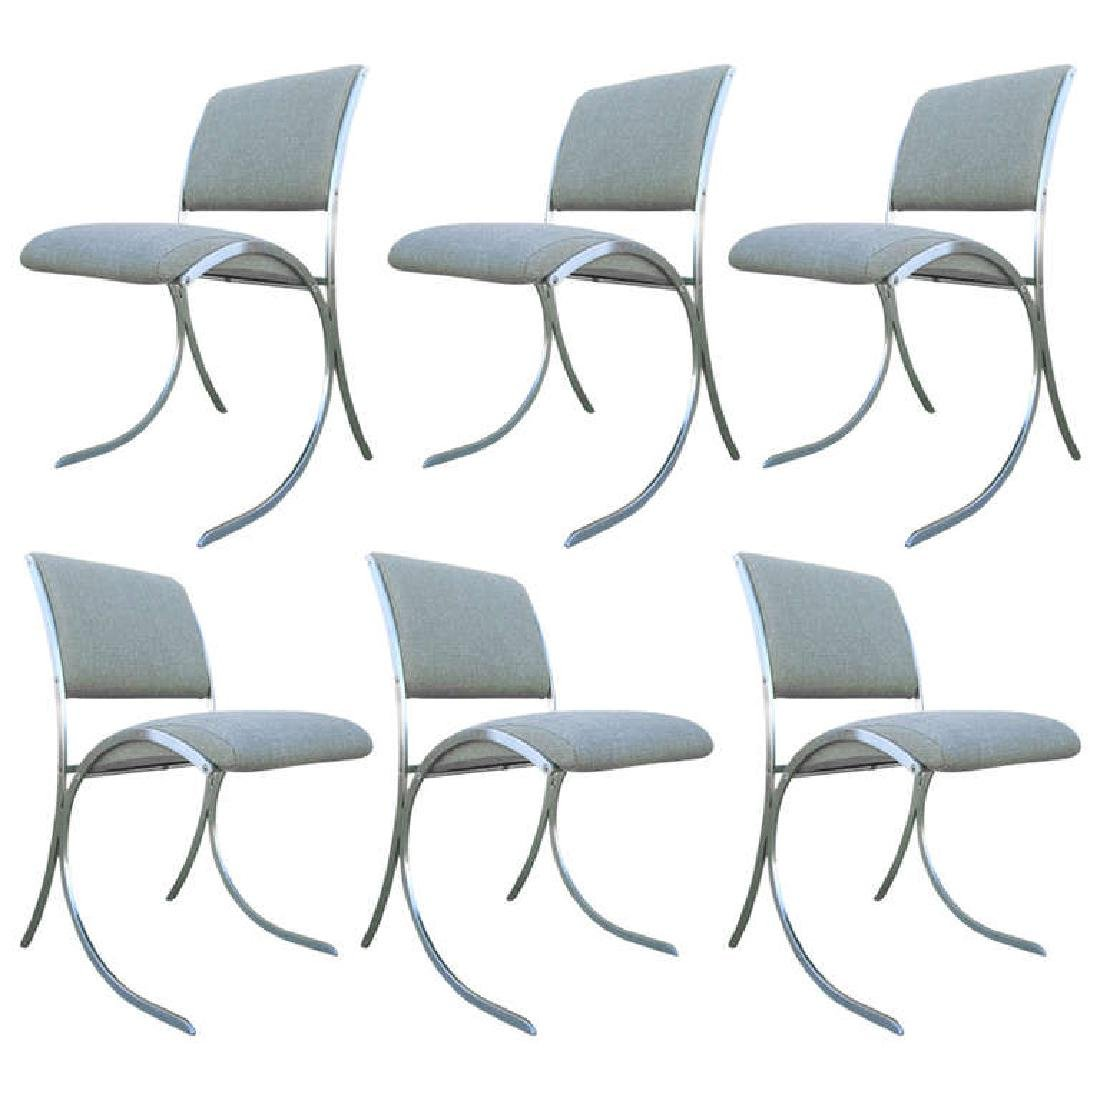 Six French Dining Chairs by Maison Jansen